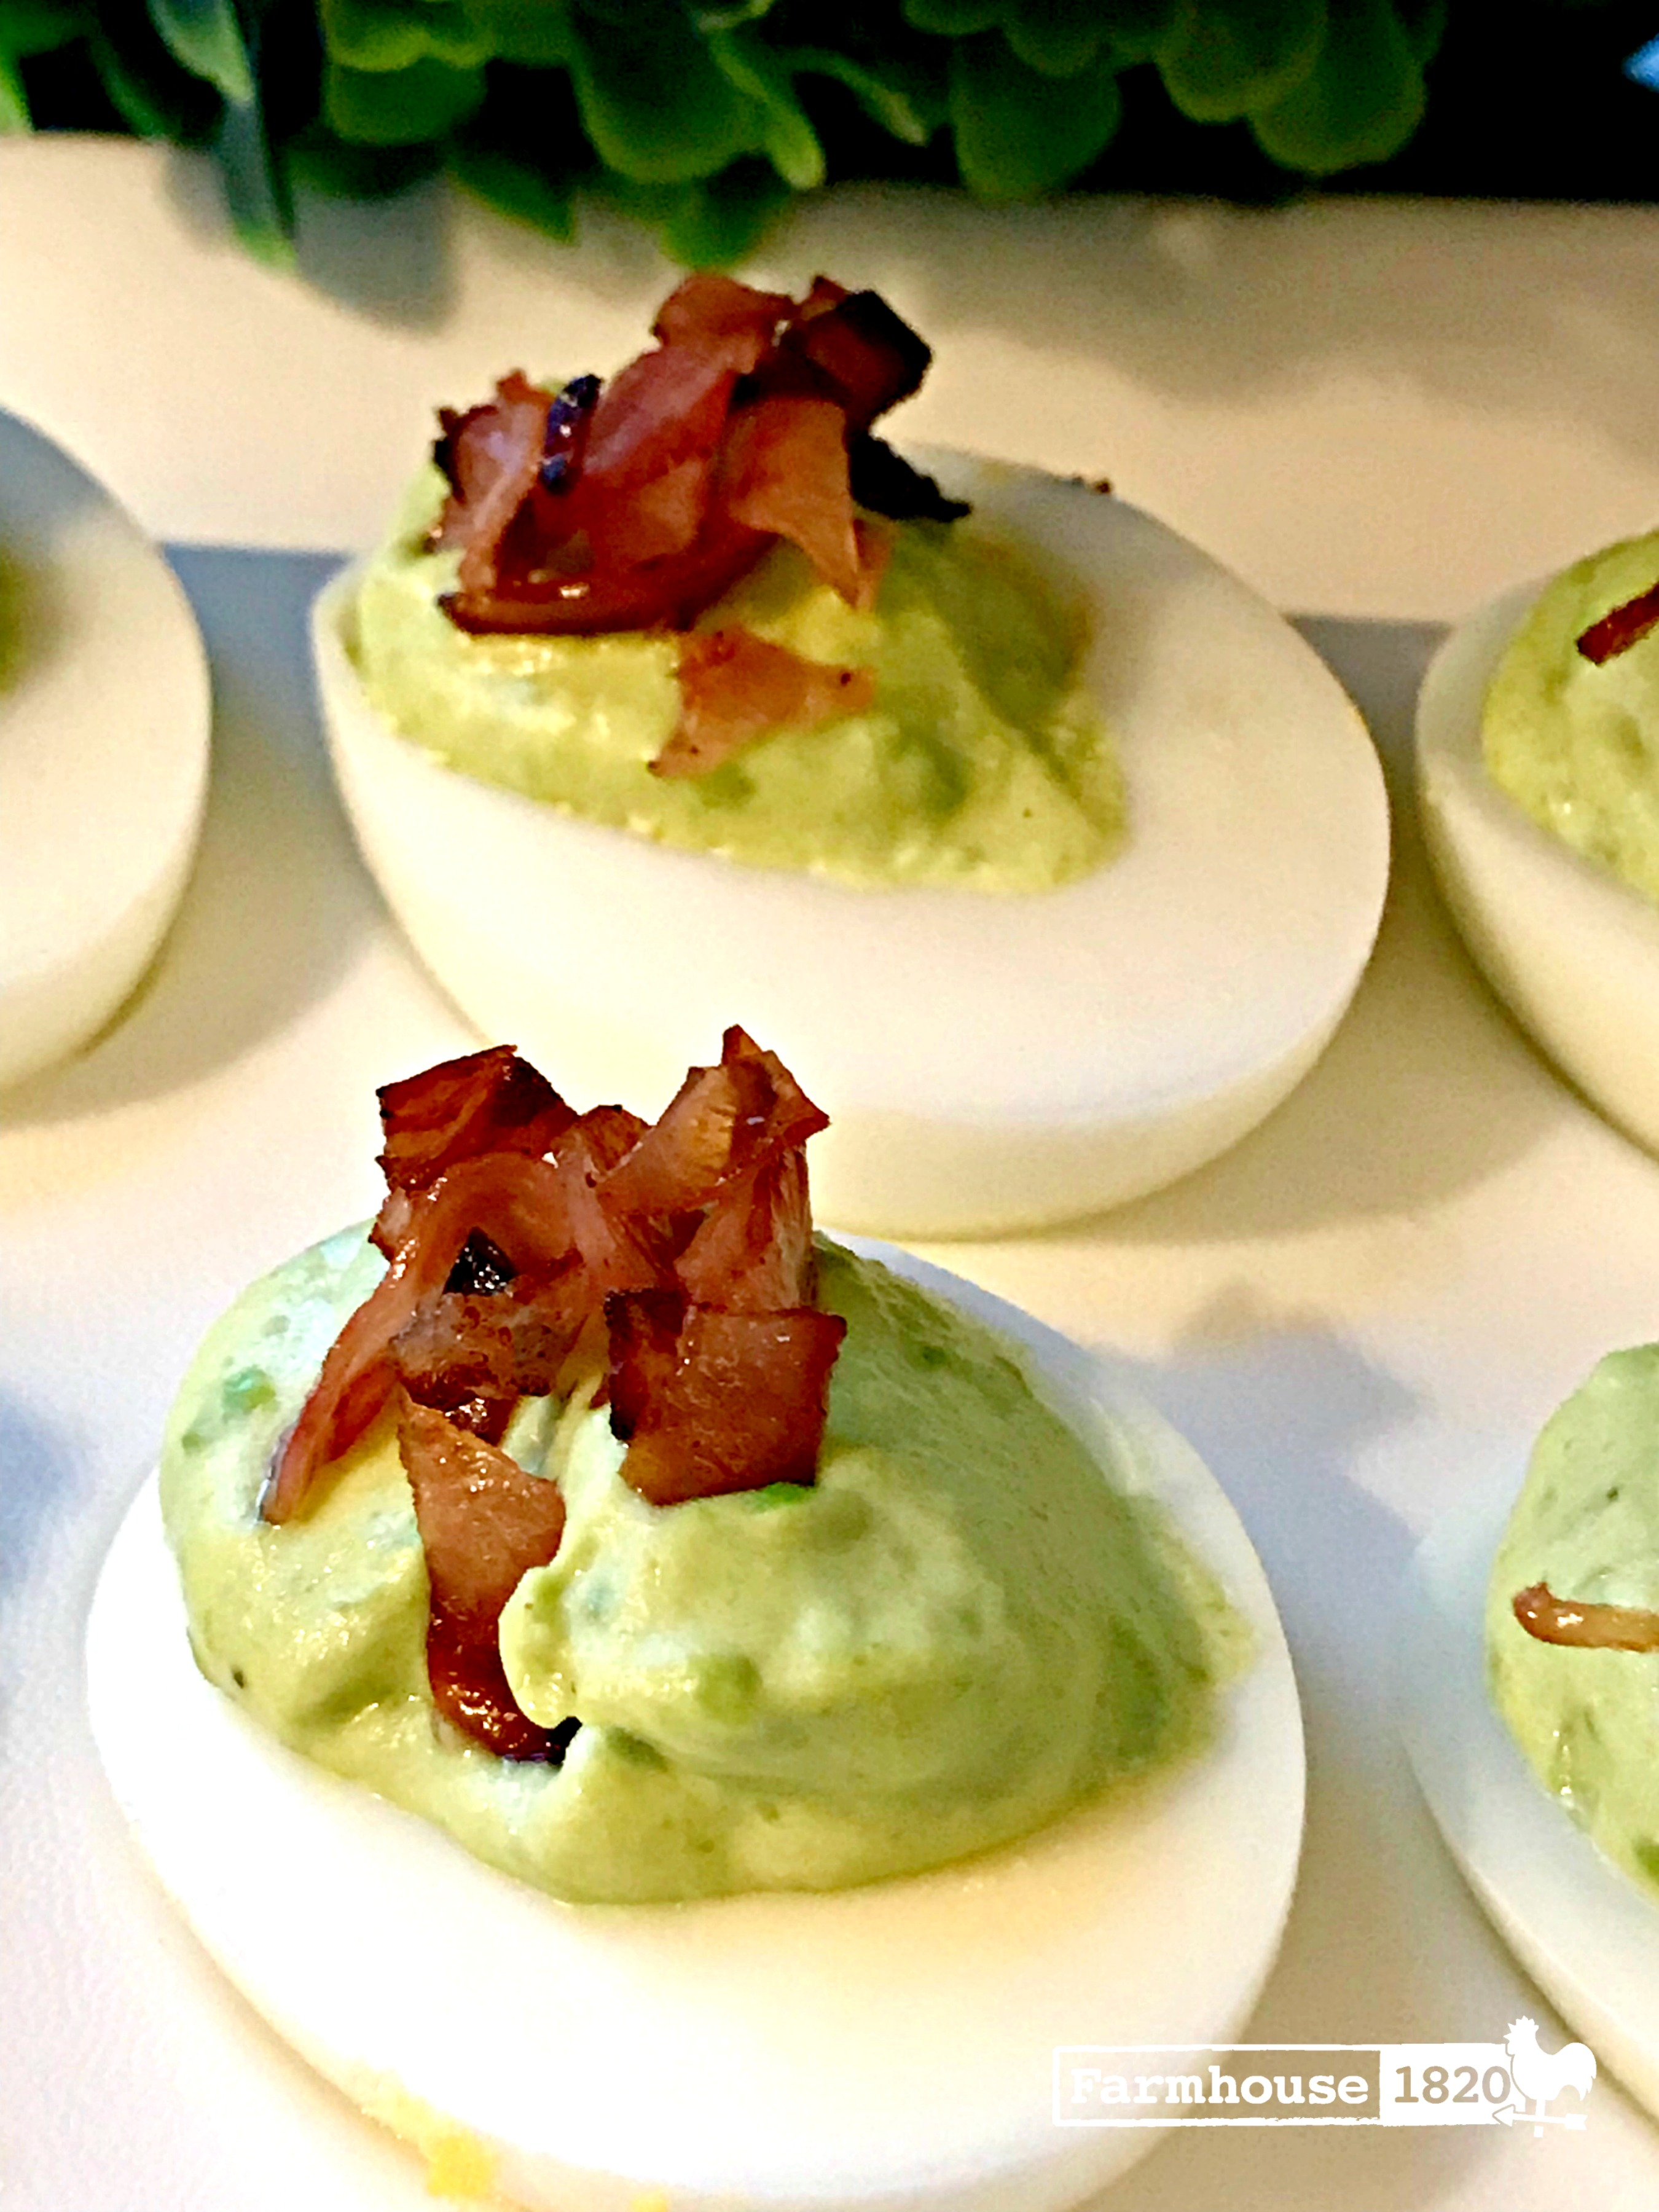 green eggs and ham - deviled eggs style